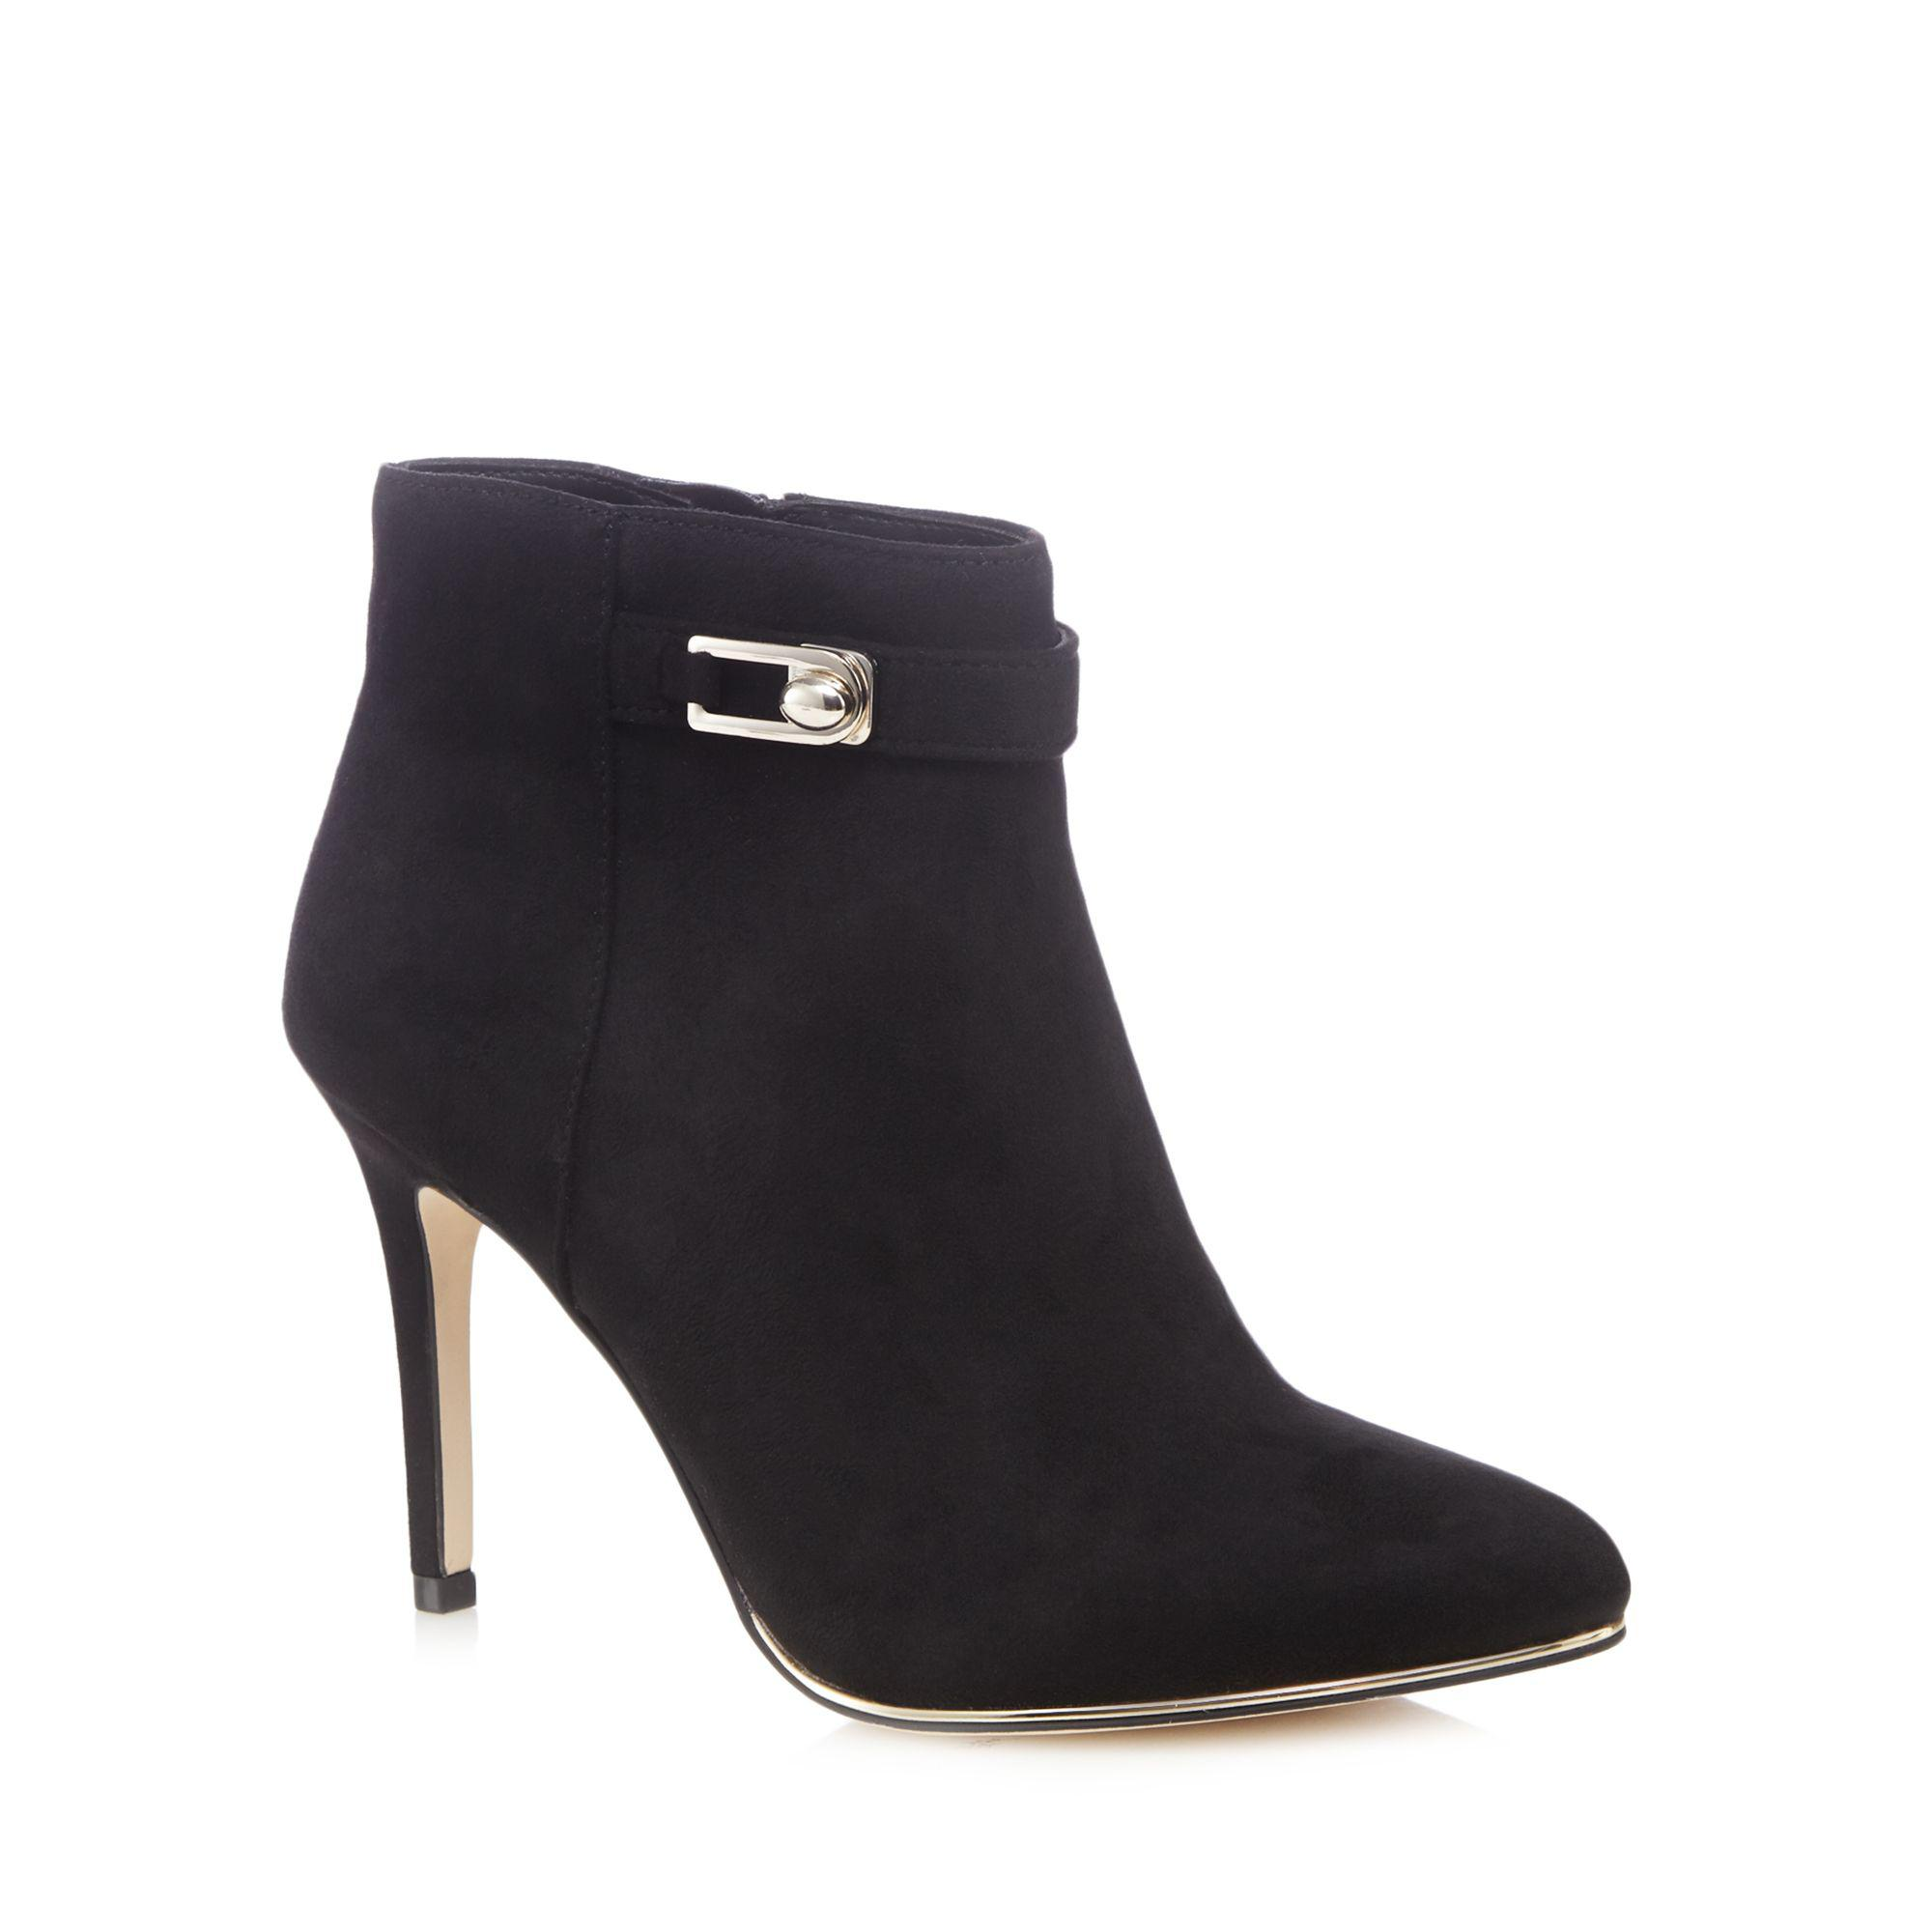 Black suedette 'Lovealian' high stiletto heel ankle boots discount exclusive Sq5VgaOKRG